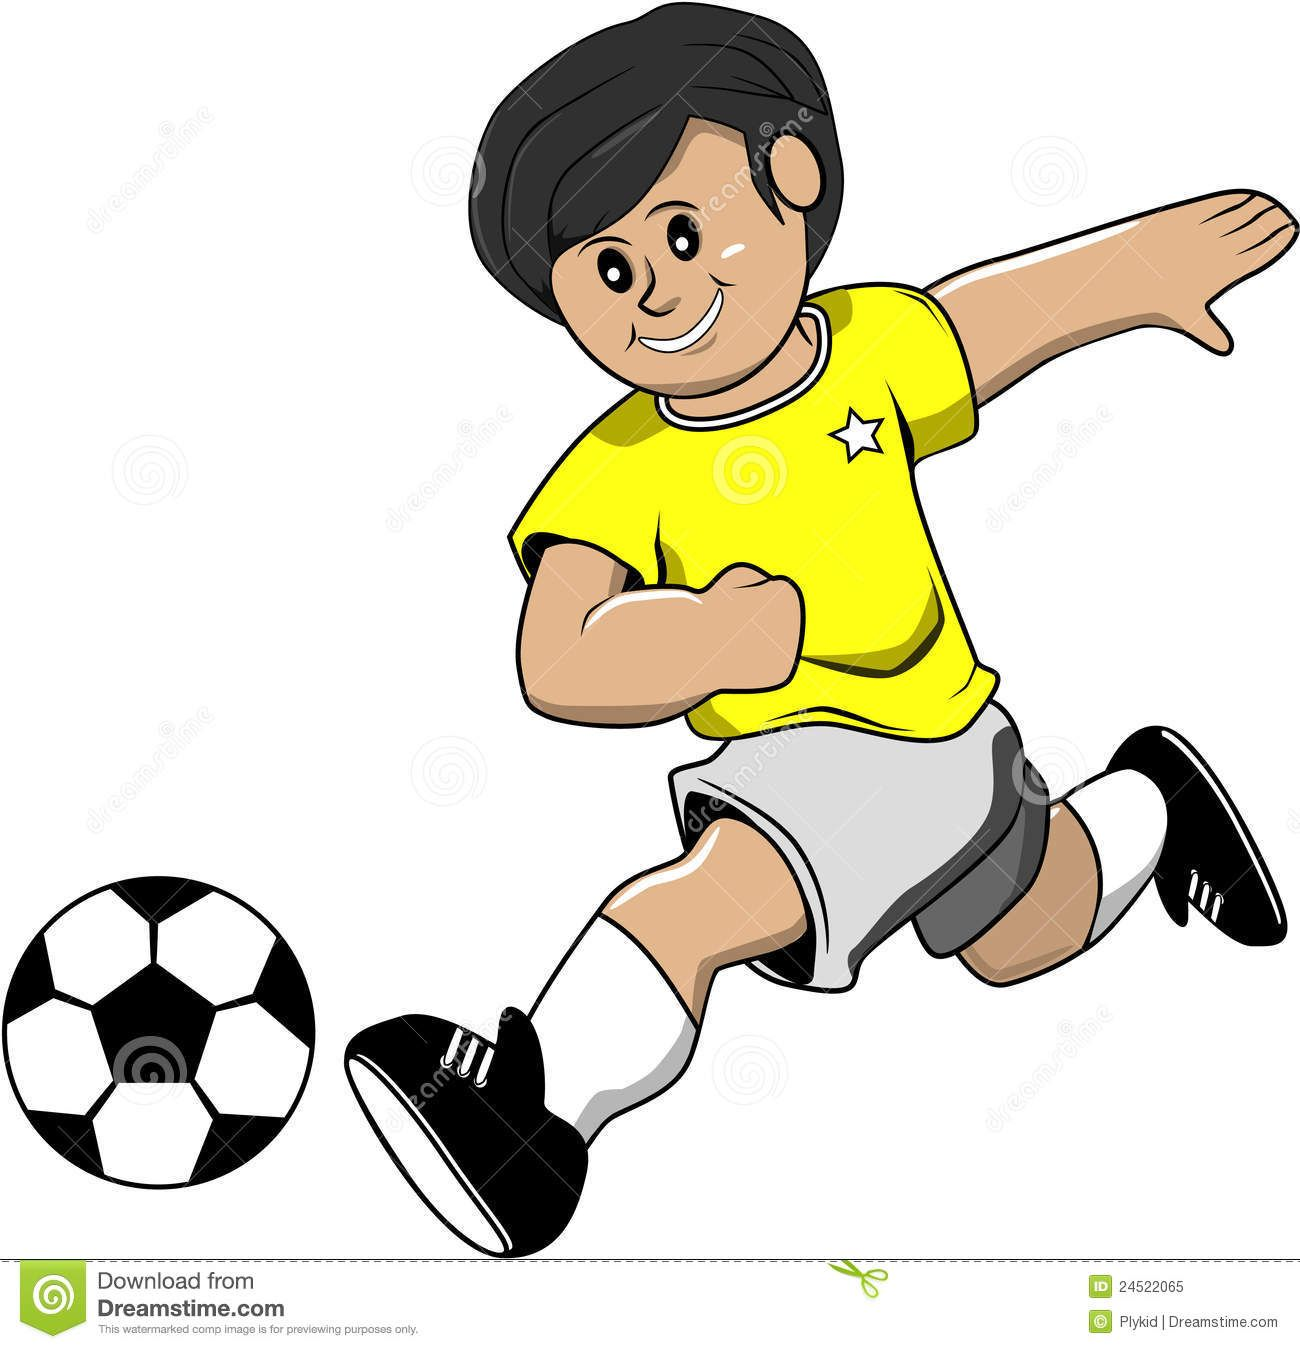 Children At Play Clip Art This Is A Illusration Of Boy Play Soccer Soccer Boys Play Soccer Soccer Players